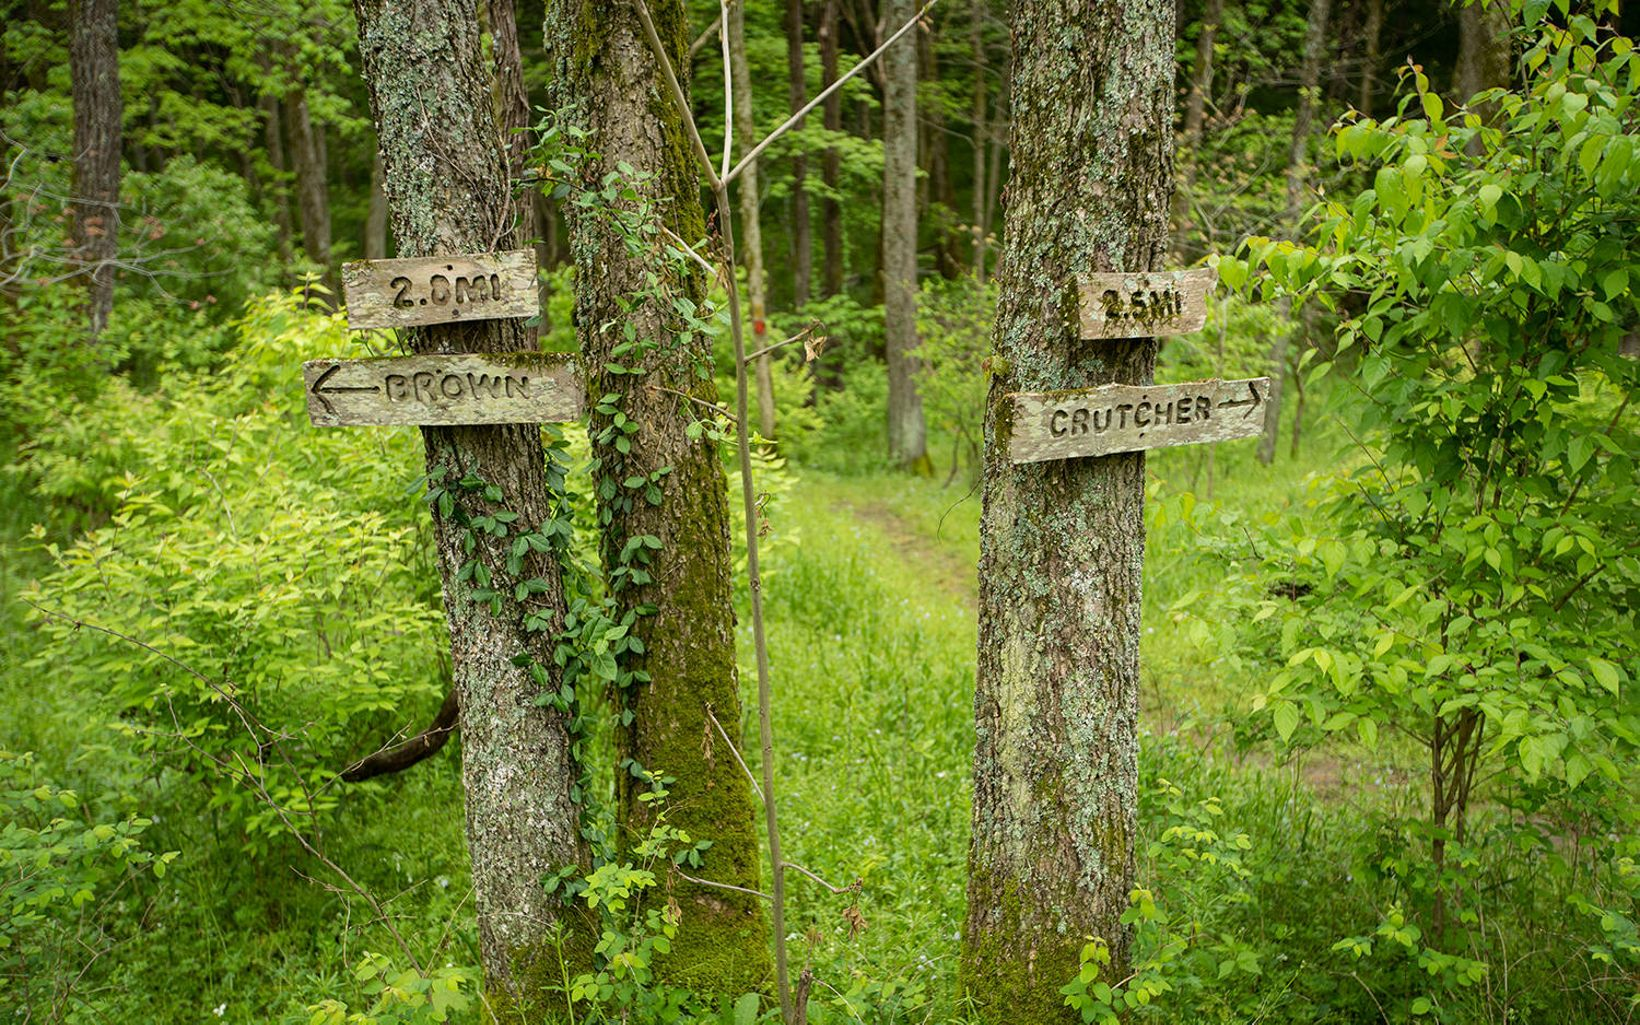 Signs on trees point to Brown and Crutcher nature preserves.